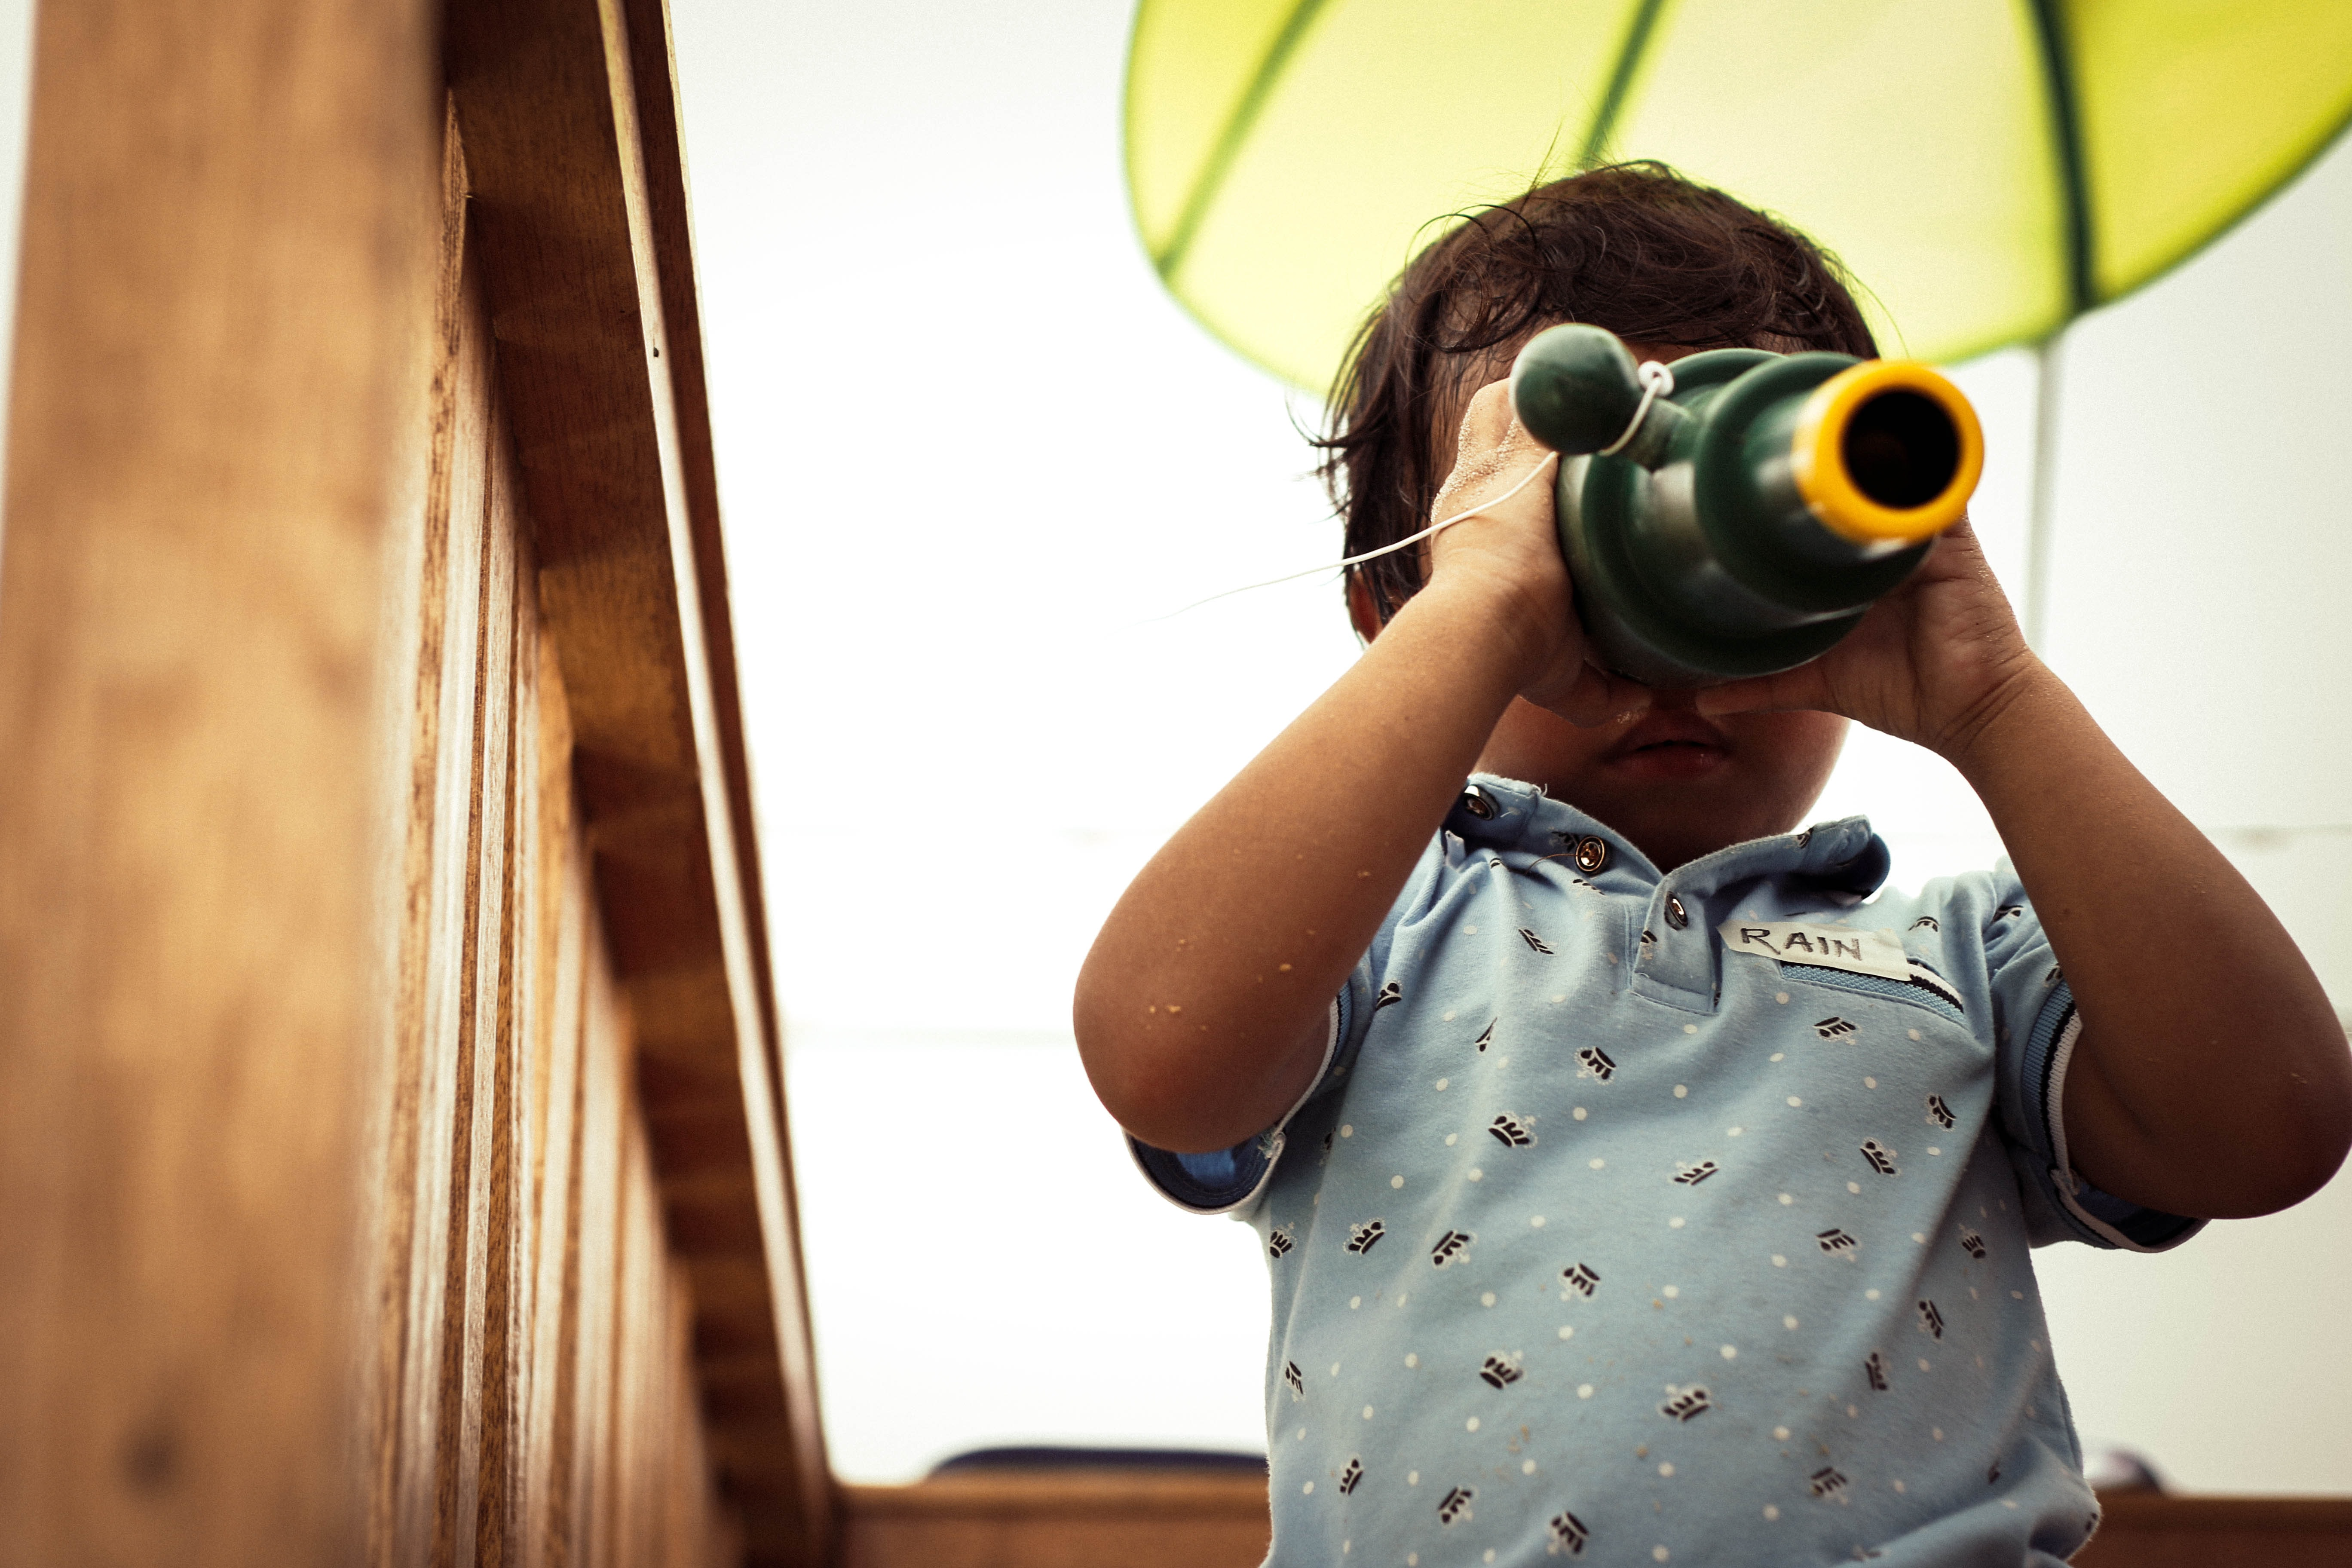 """Infant wearing baby blue shirt with a name tag that says """"RAIN"""" using a telescope looking down the wide lens while stringed to a wooden handrail"""